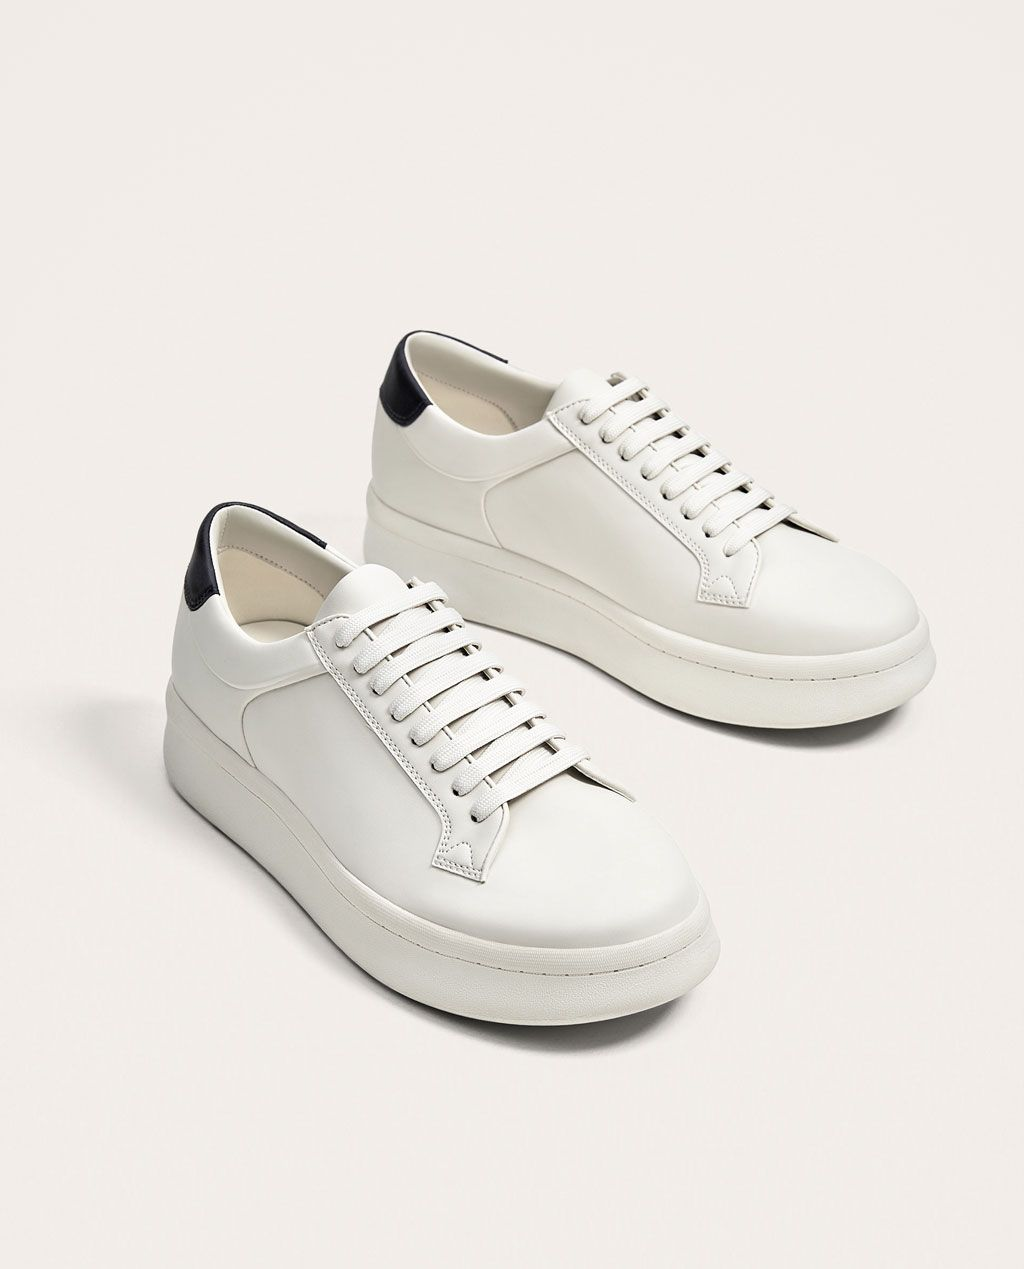 a432735b4c Image 1 of CLASSIC WHITE PLATFORM SNEAKERS from Zara | MENS SHOES in ...